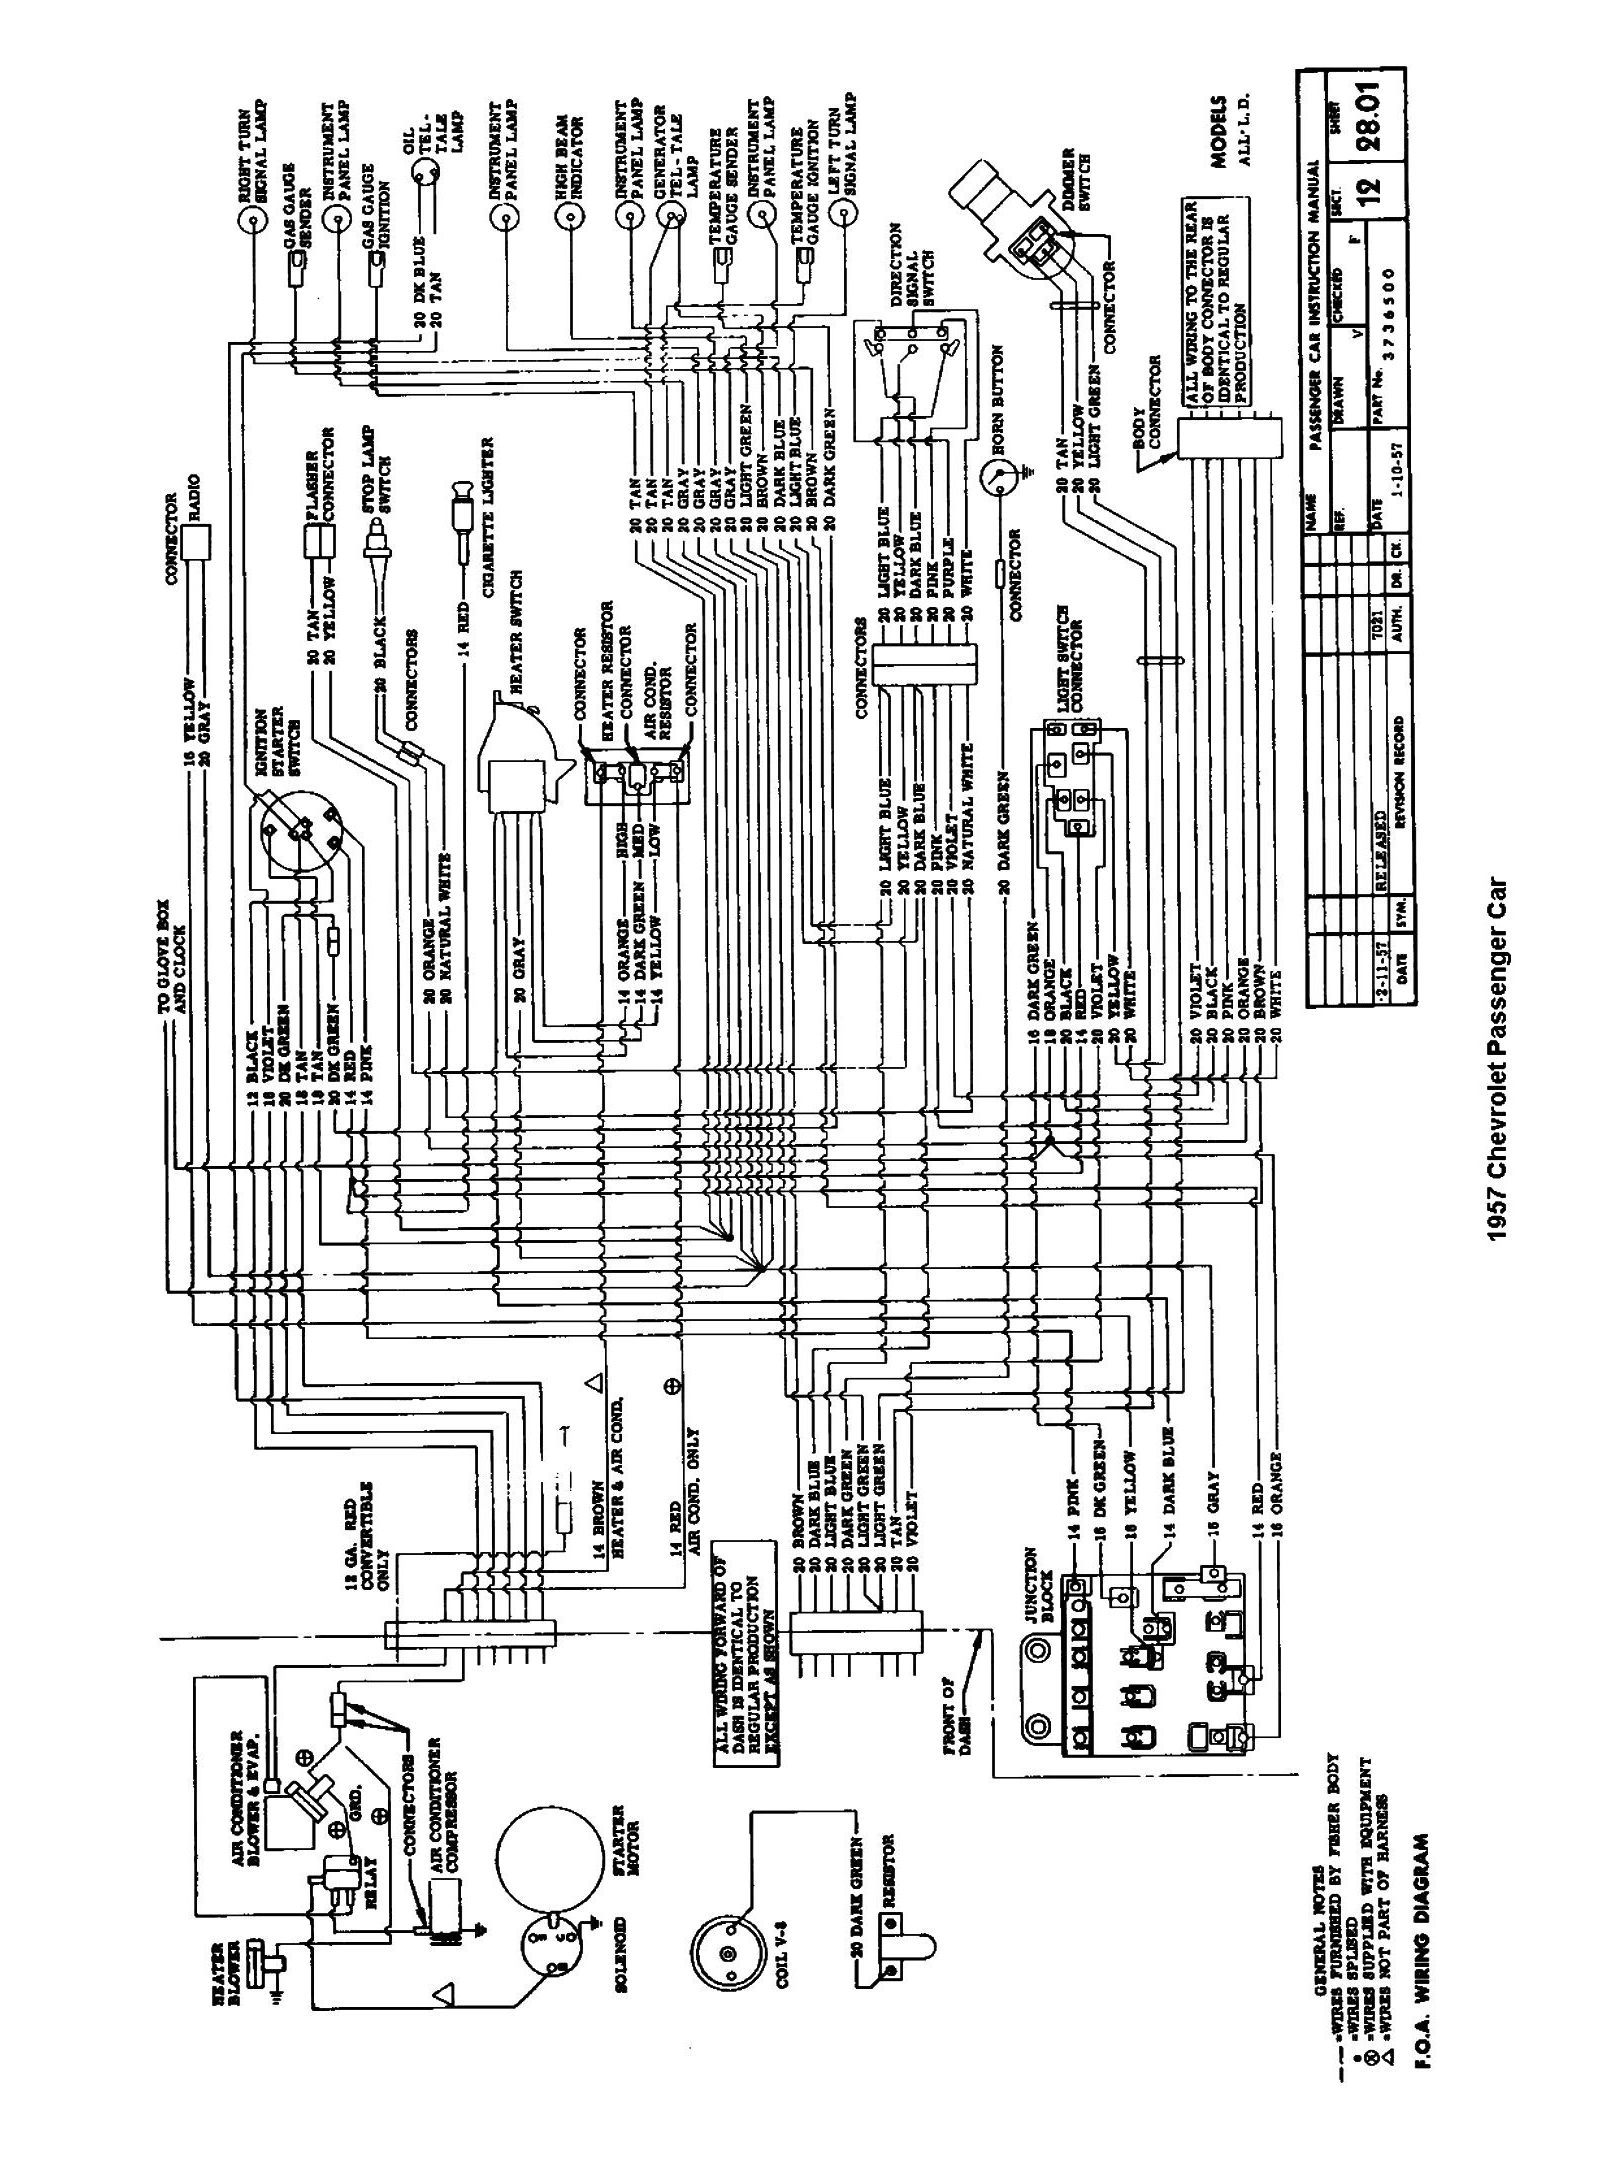 1957 chevy wiring harness diagram simple wiring diagram dodge wiring  harness diagram 1957 chevy heater wiring